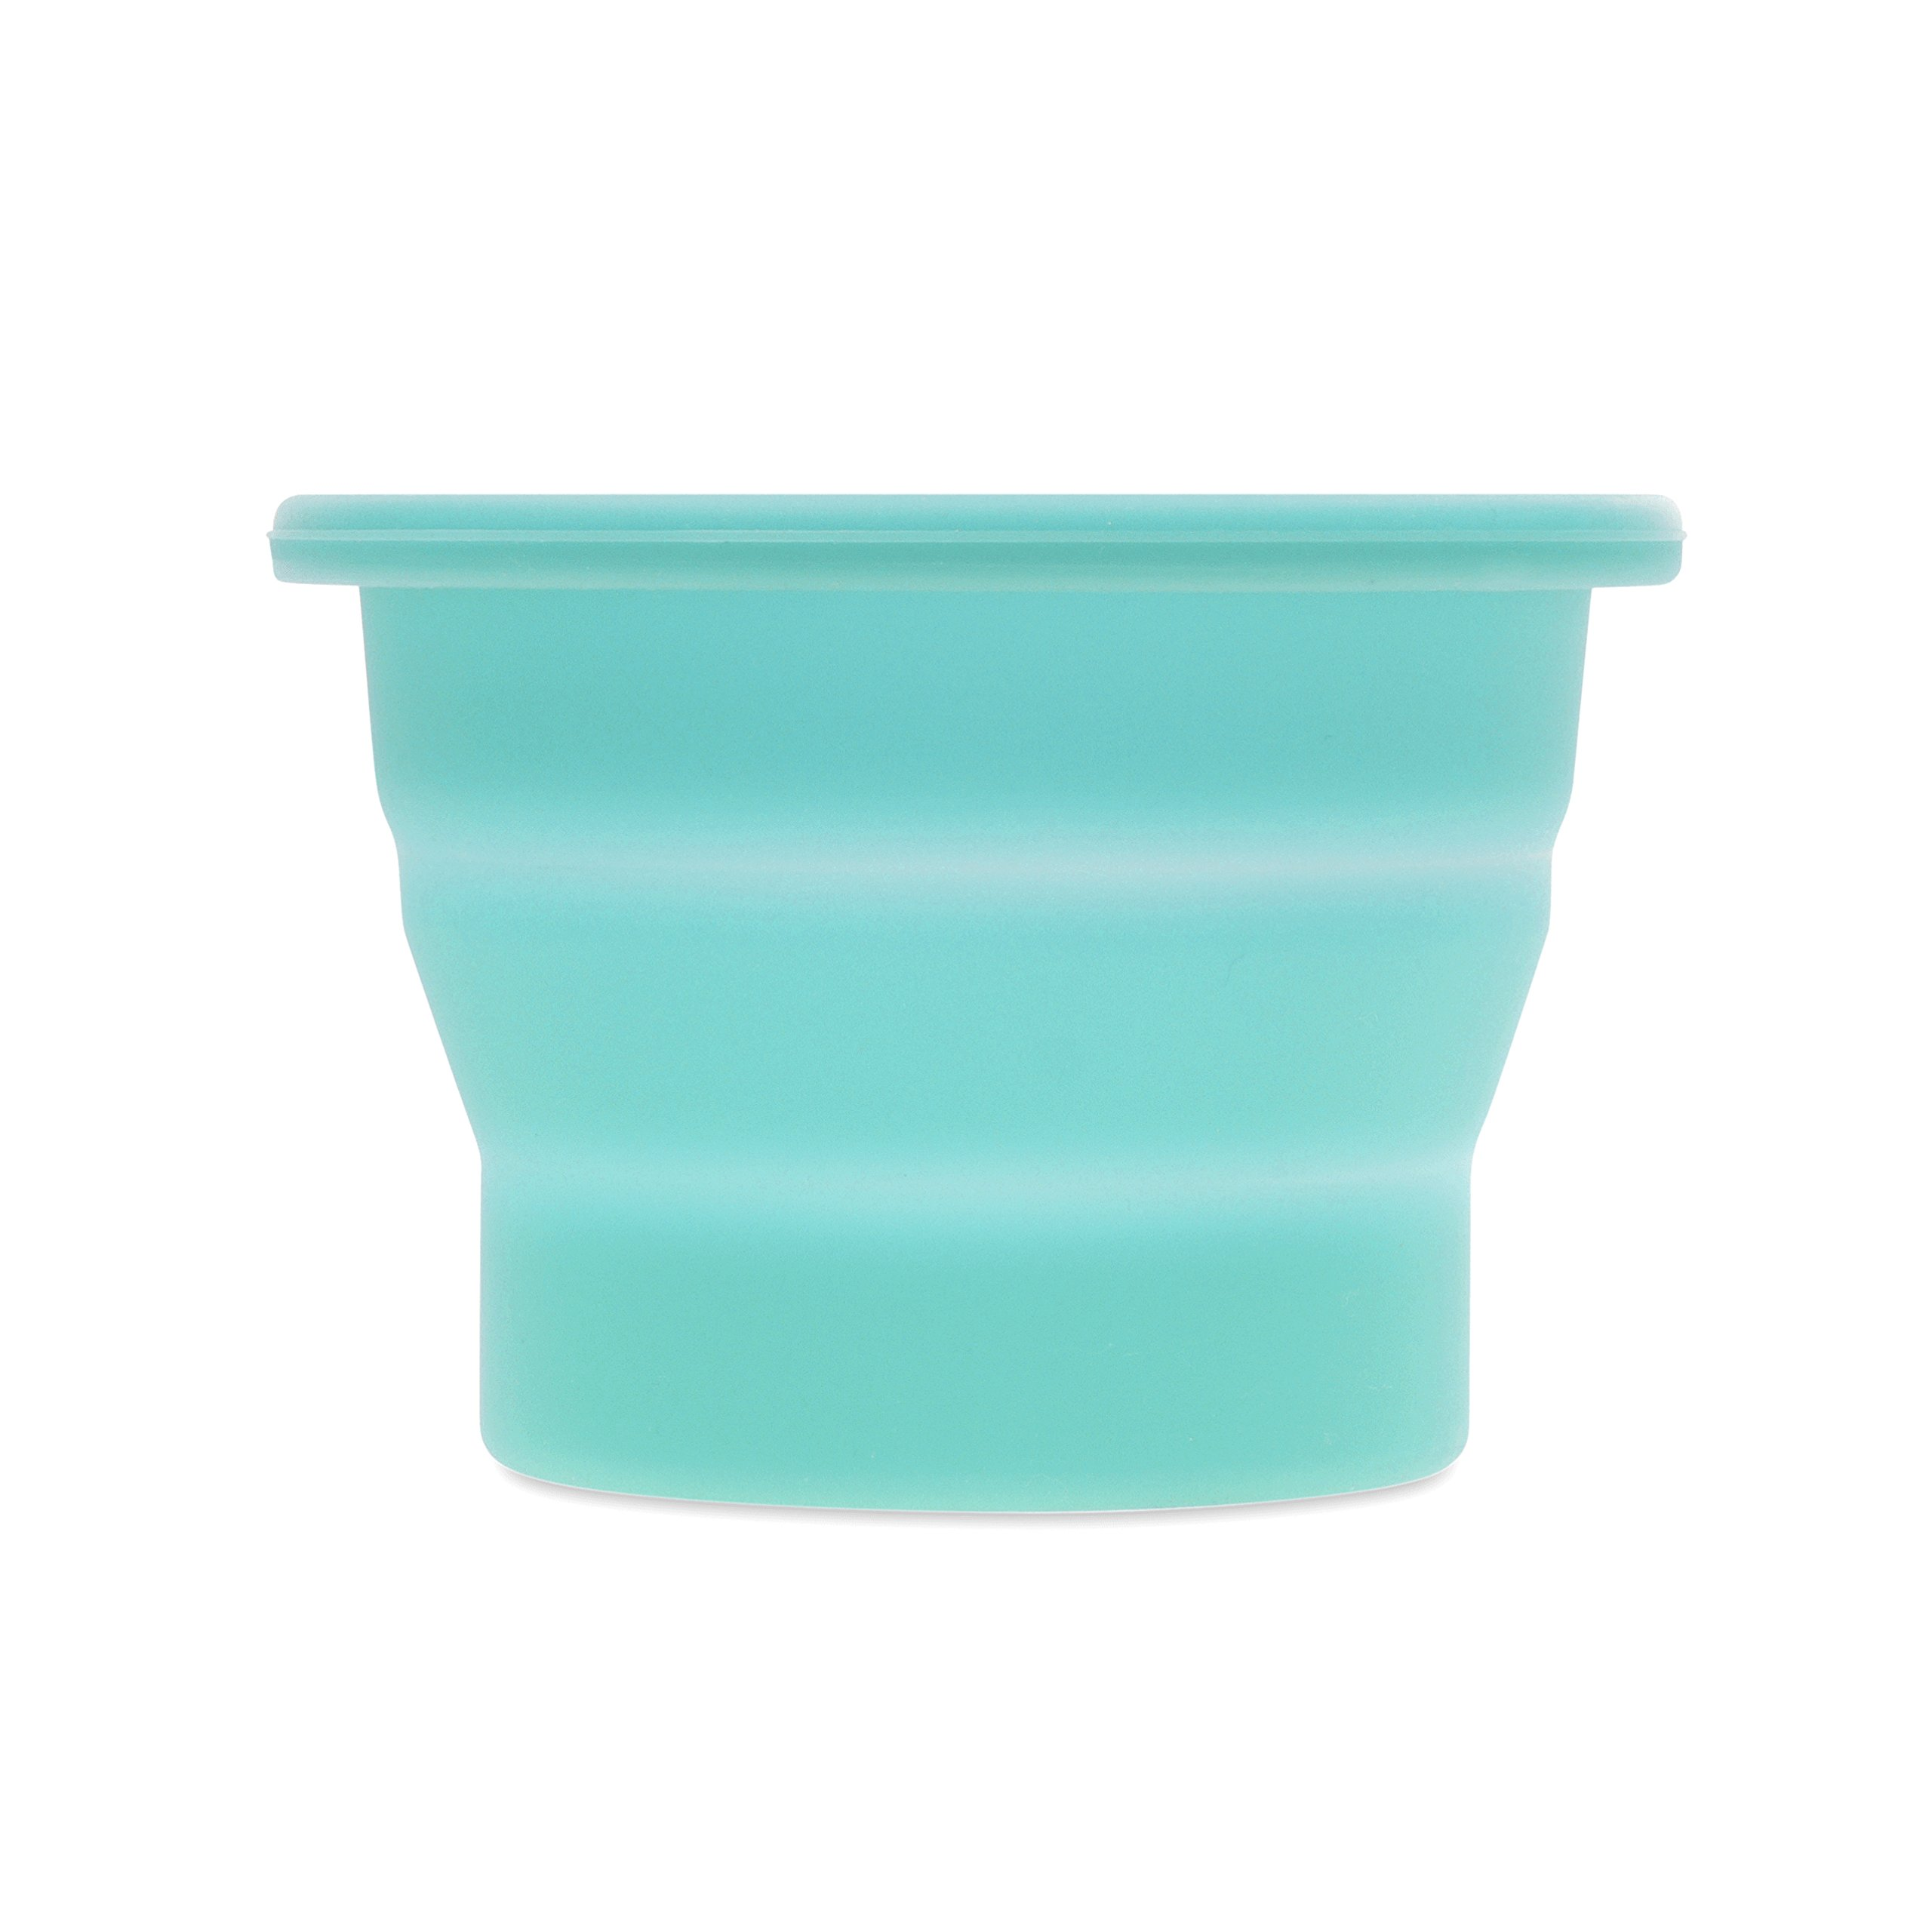 Anigan Collapsible Silicone Sterilizing Cup Designed for Sanitation and Storing Menstrual Cups, Blizzard Blue